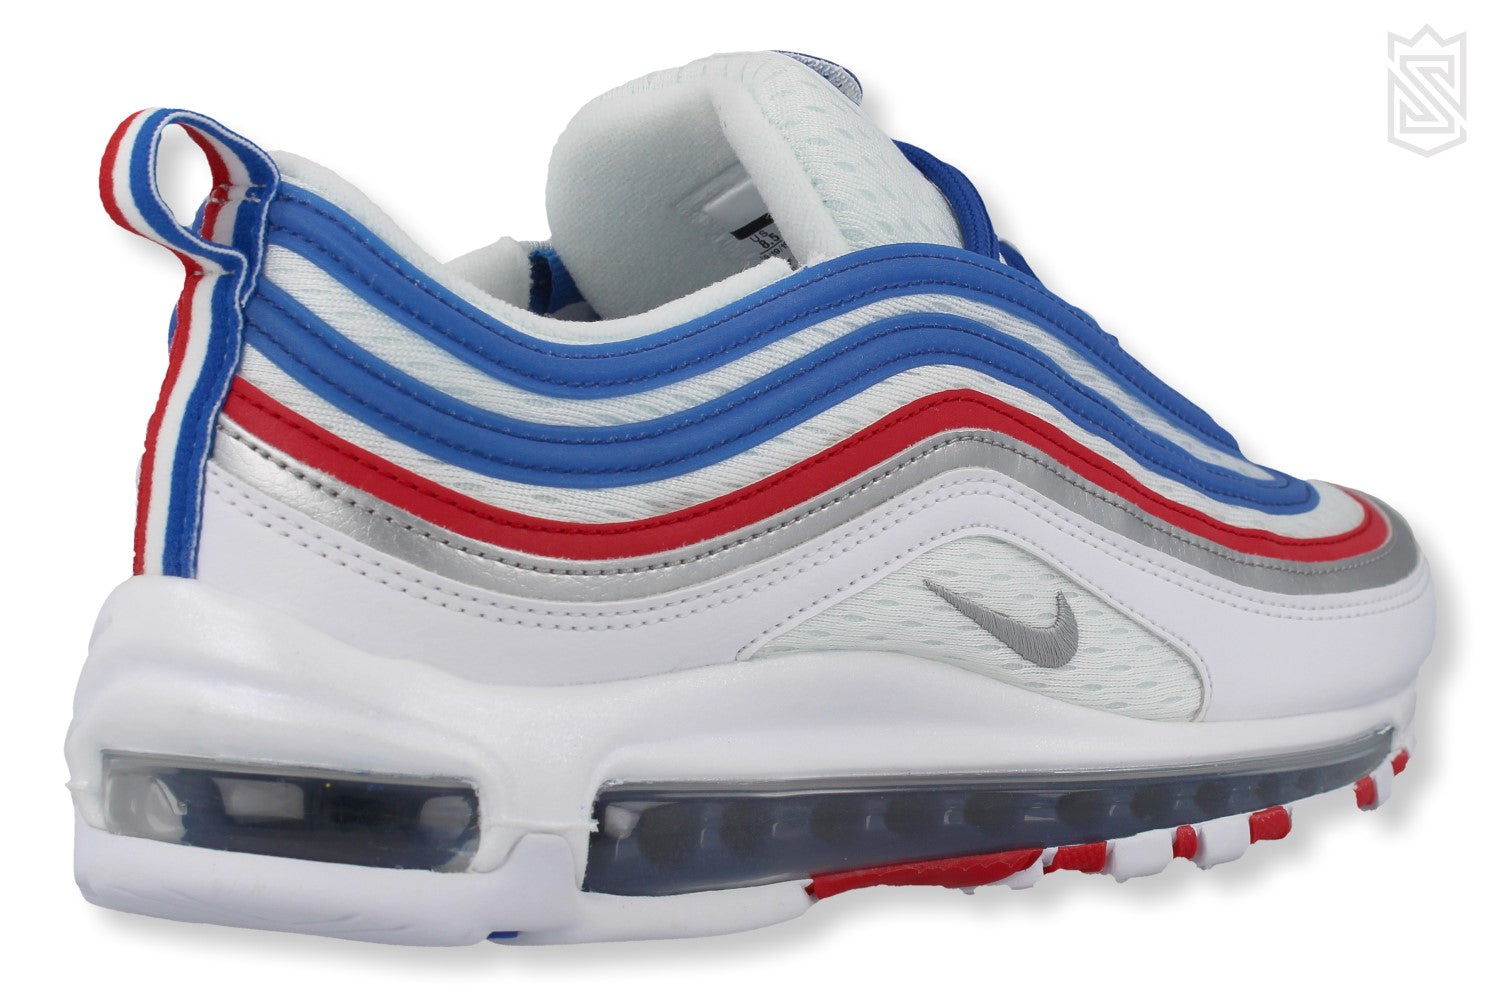 Air Max 97 - All Star Jersey - Schrittmacher Shop